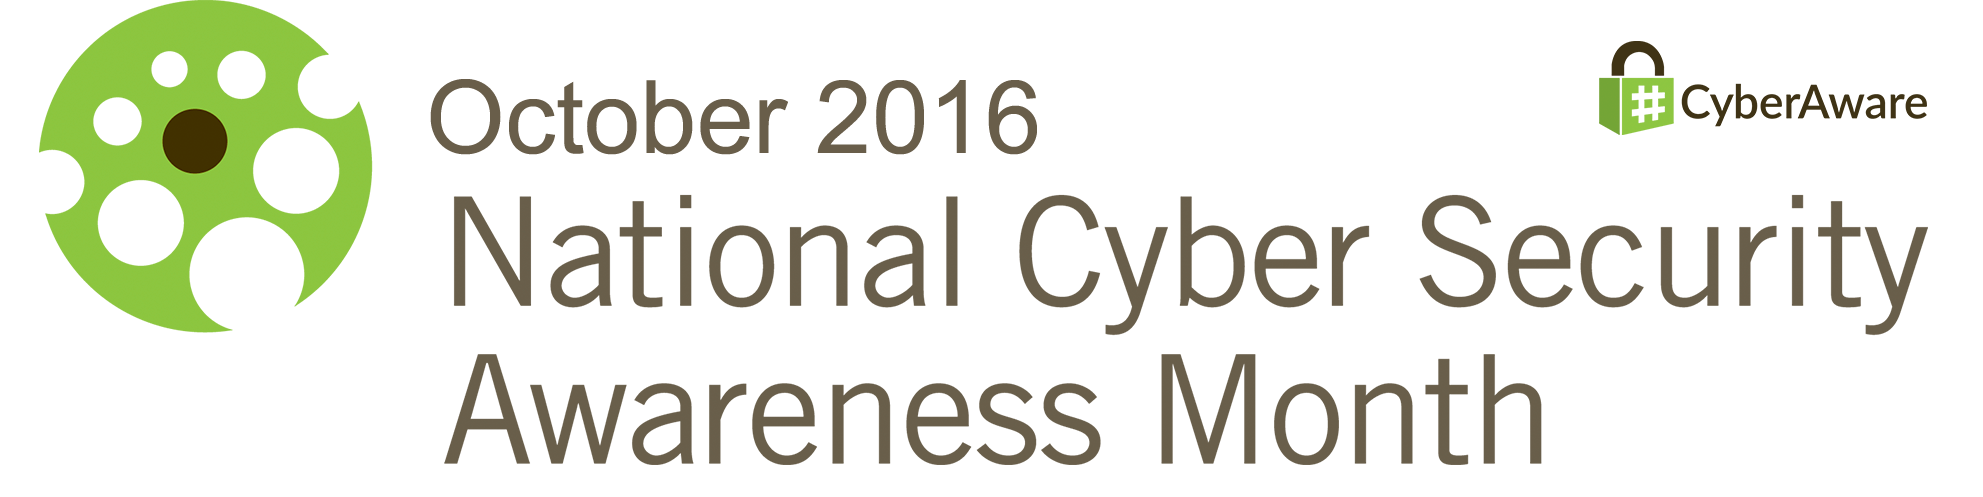 October 2016 National Cyber Security Awareness Month Logo